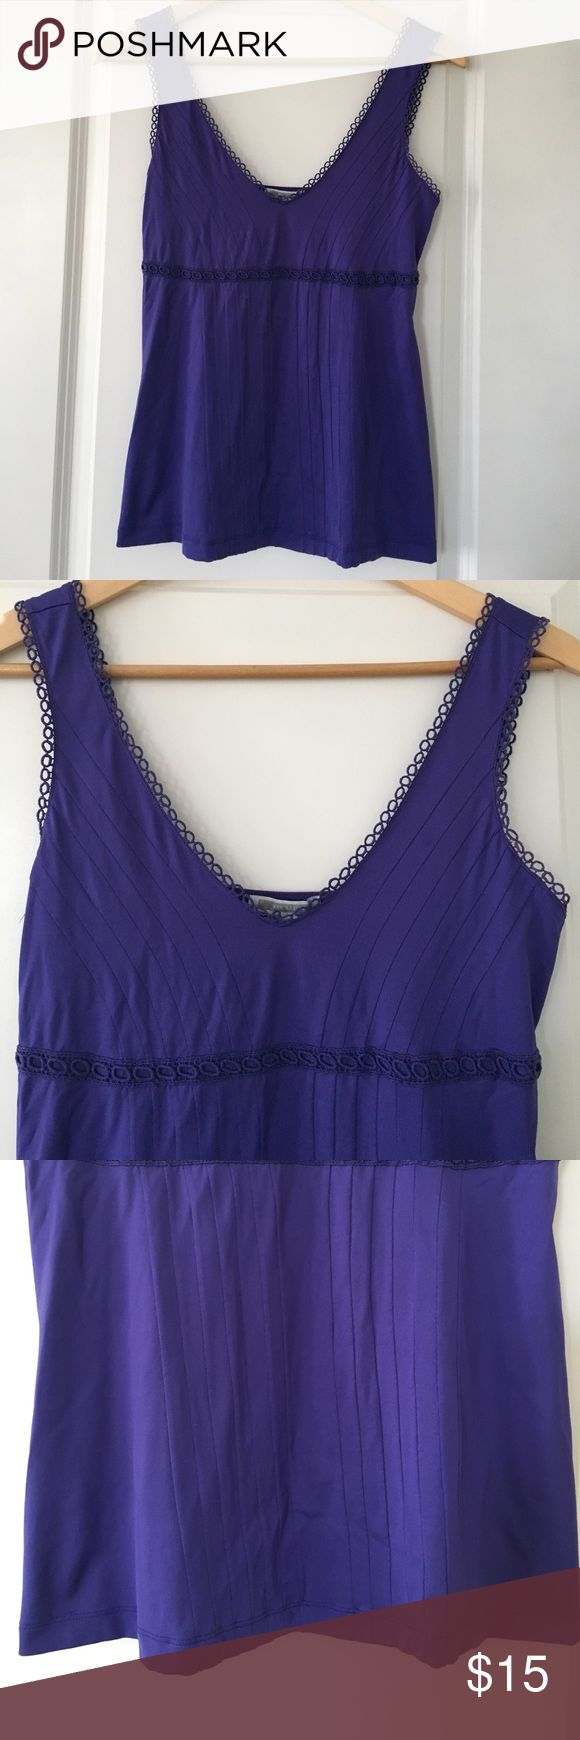 MNG by Mango top MNG by Mango tank top. Soft stretchy fabric. Blue/purplish color. Pre-owned but in great condition Mango Tops Tank Tops